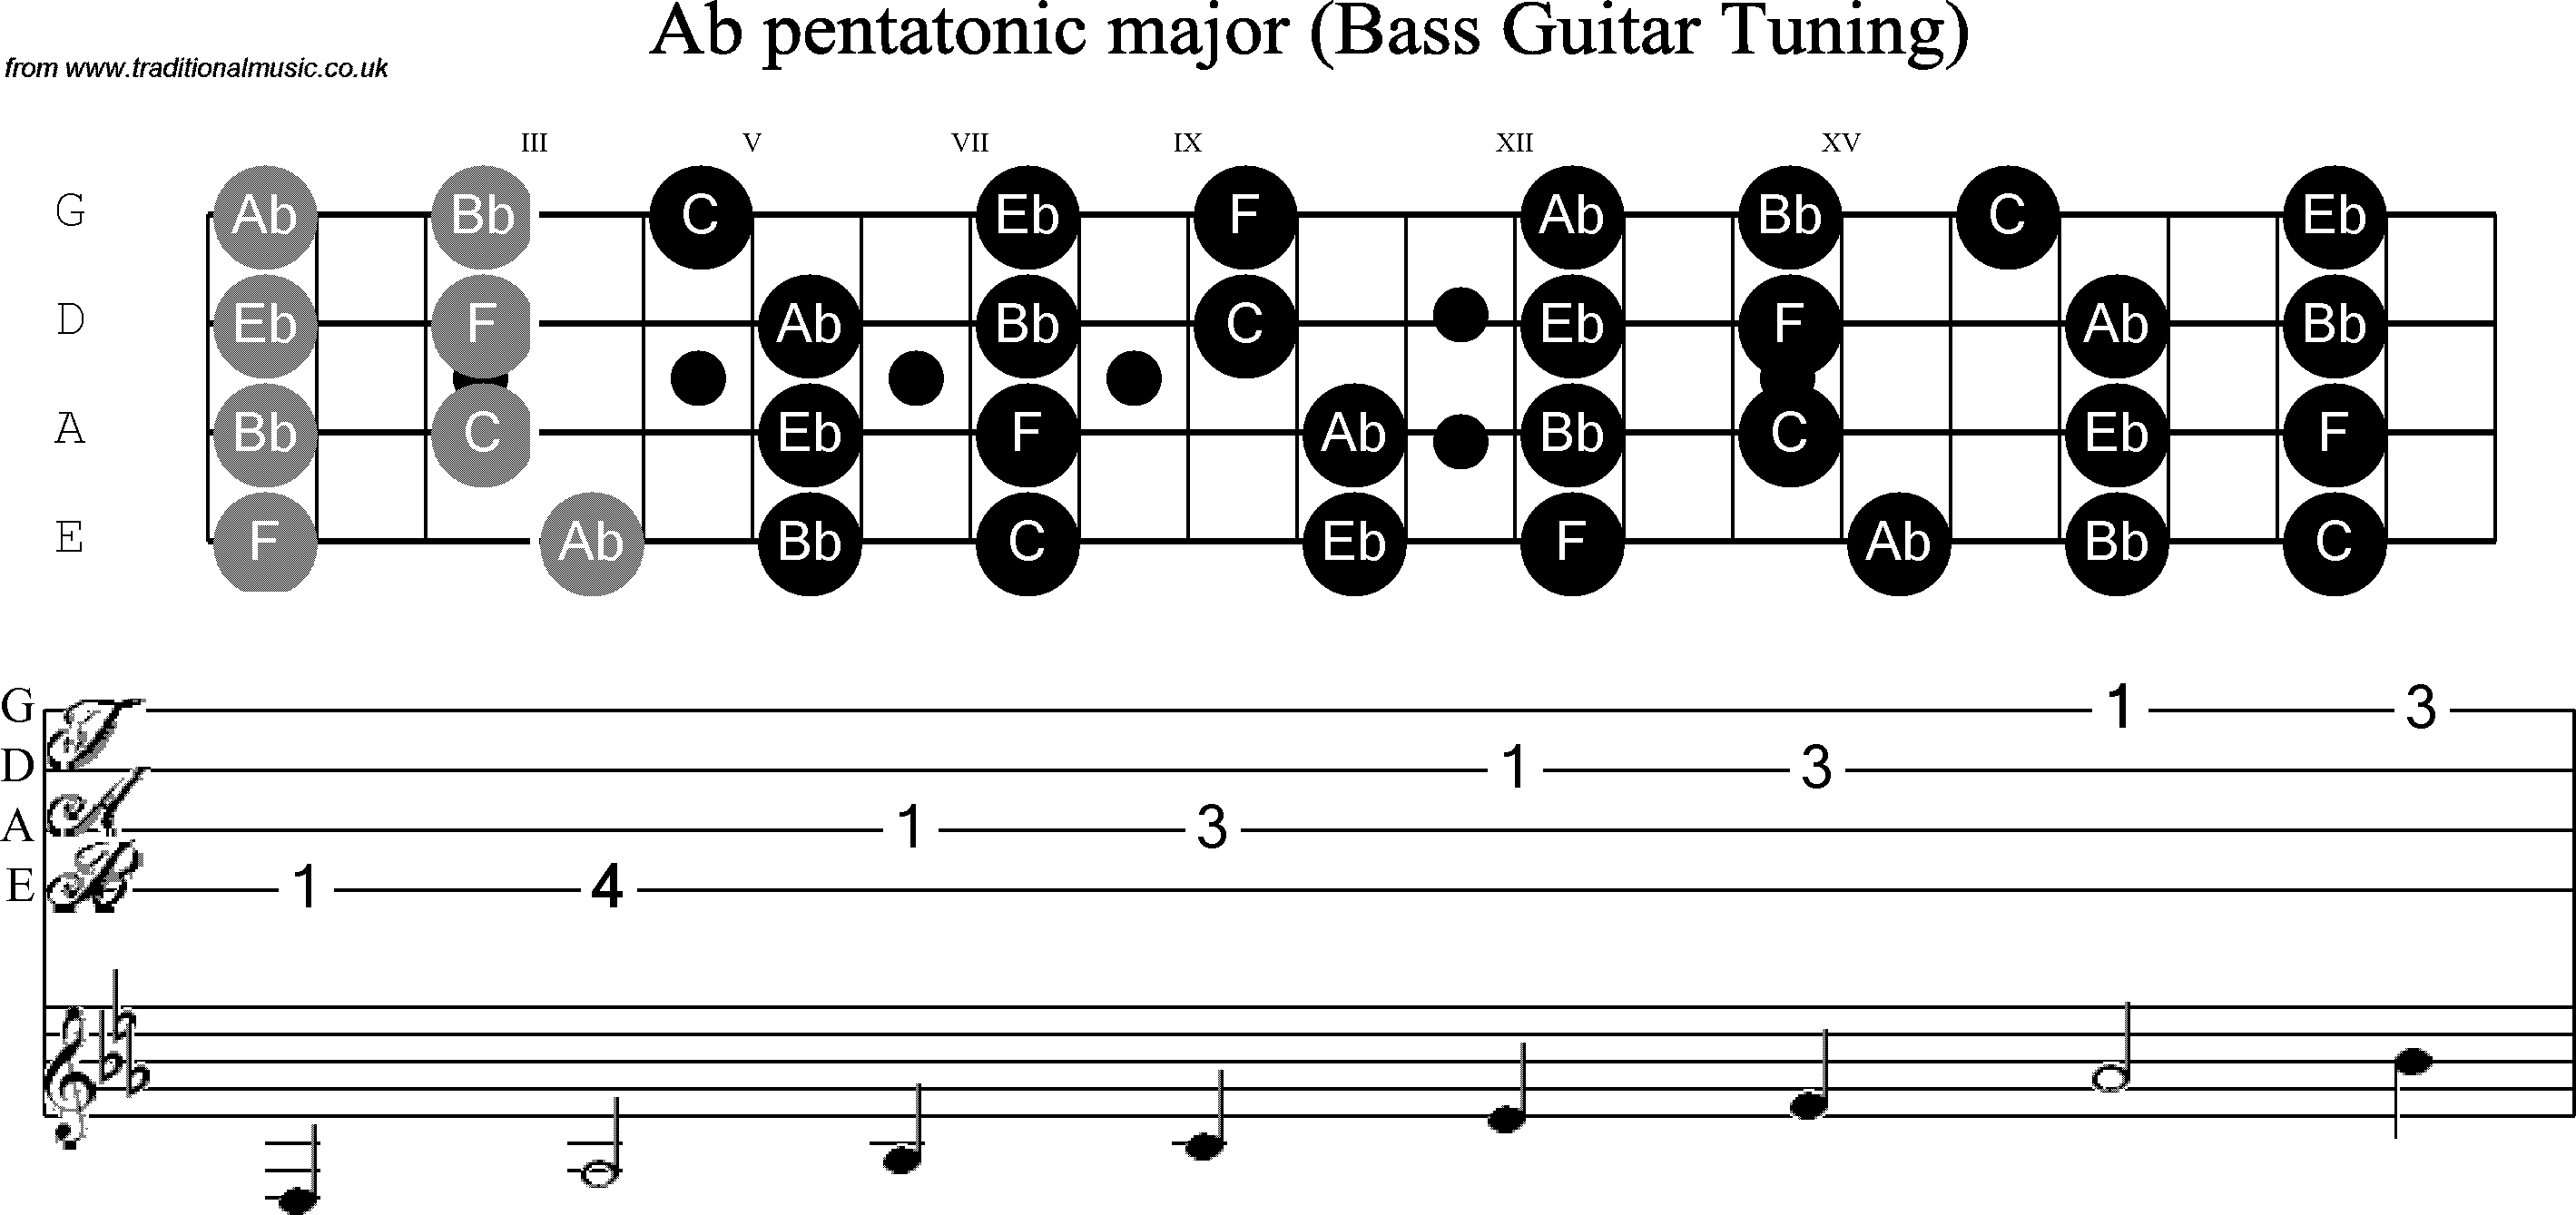 photo about Printable Guitar Scales called B Guitar Scale Ab Pentatonic